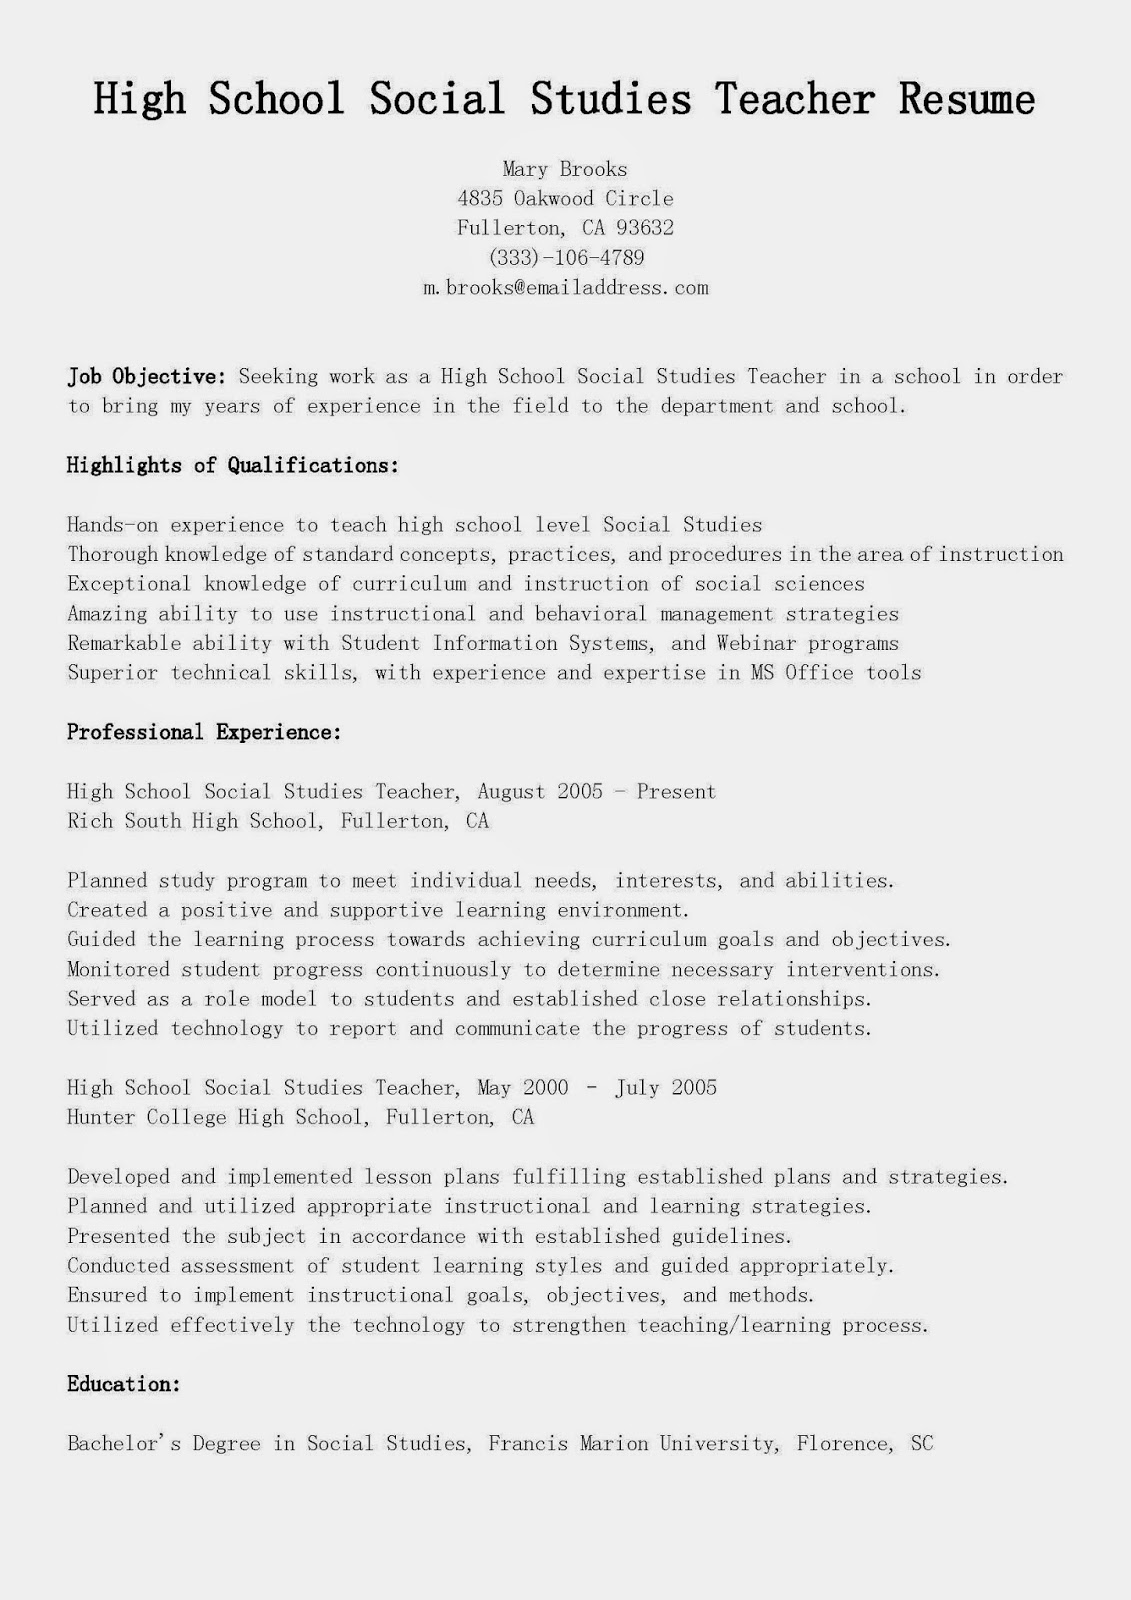 resume samples  high school social studies teacher resume sample